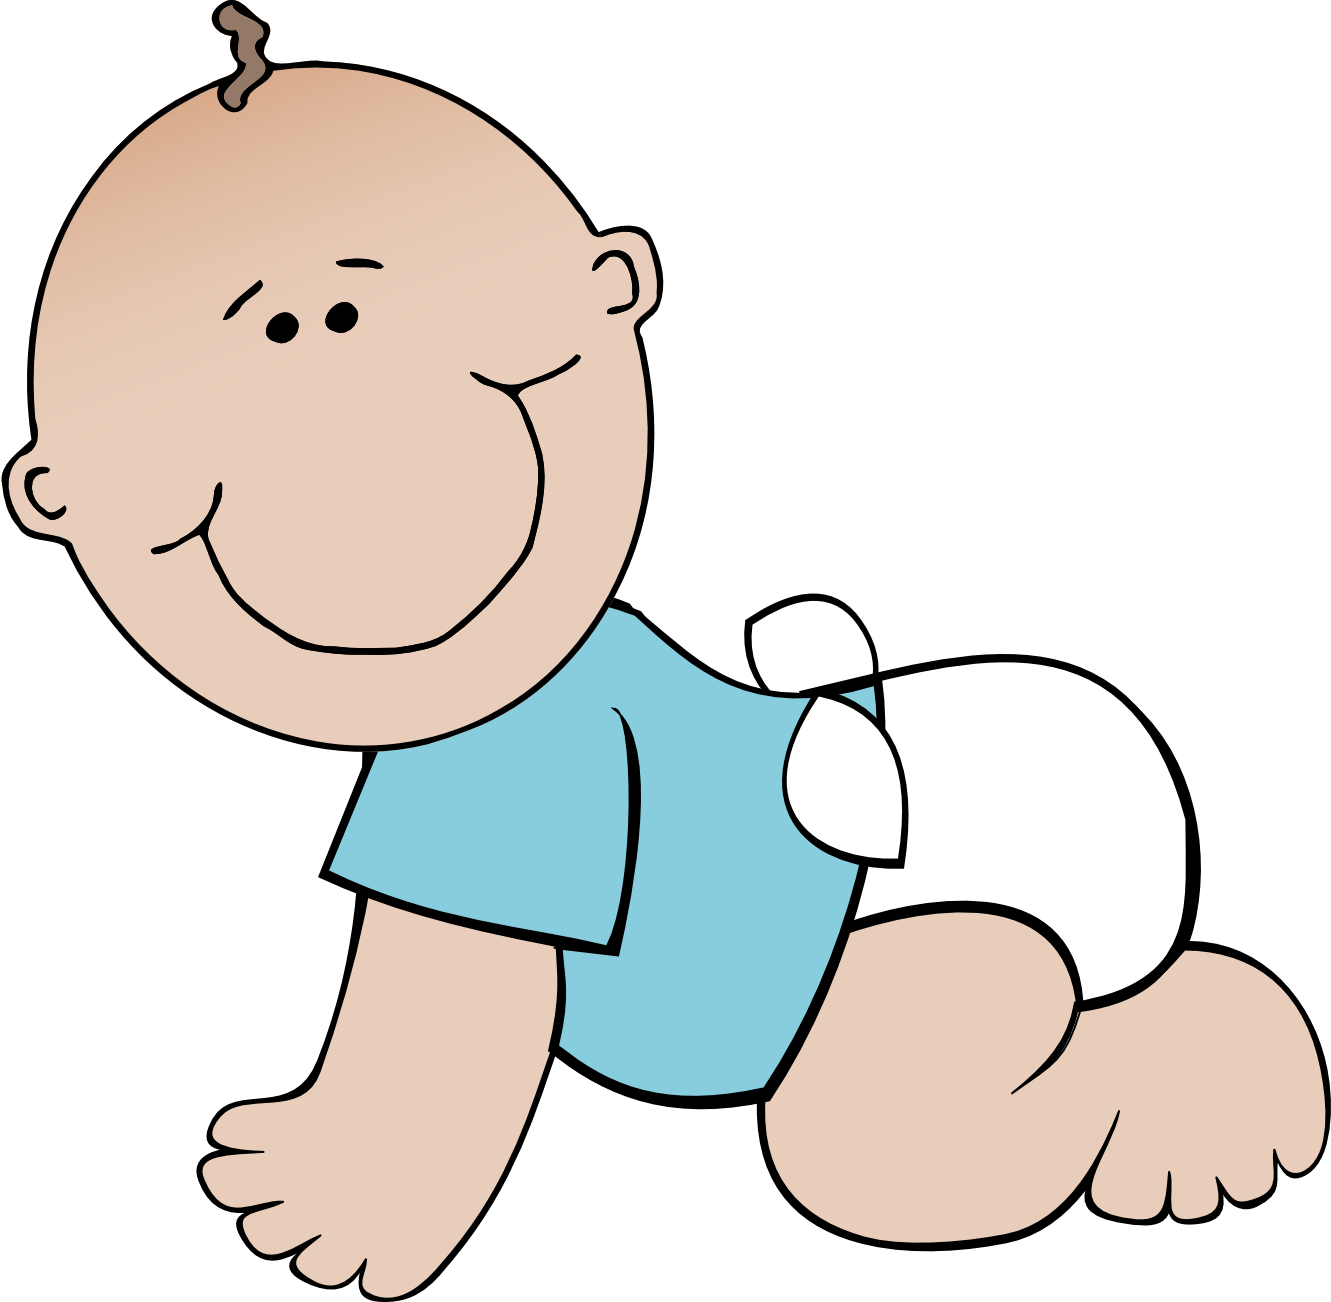 Baby transparent background clip. Infant clipart animated